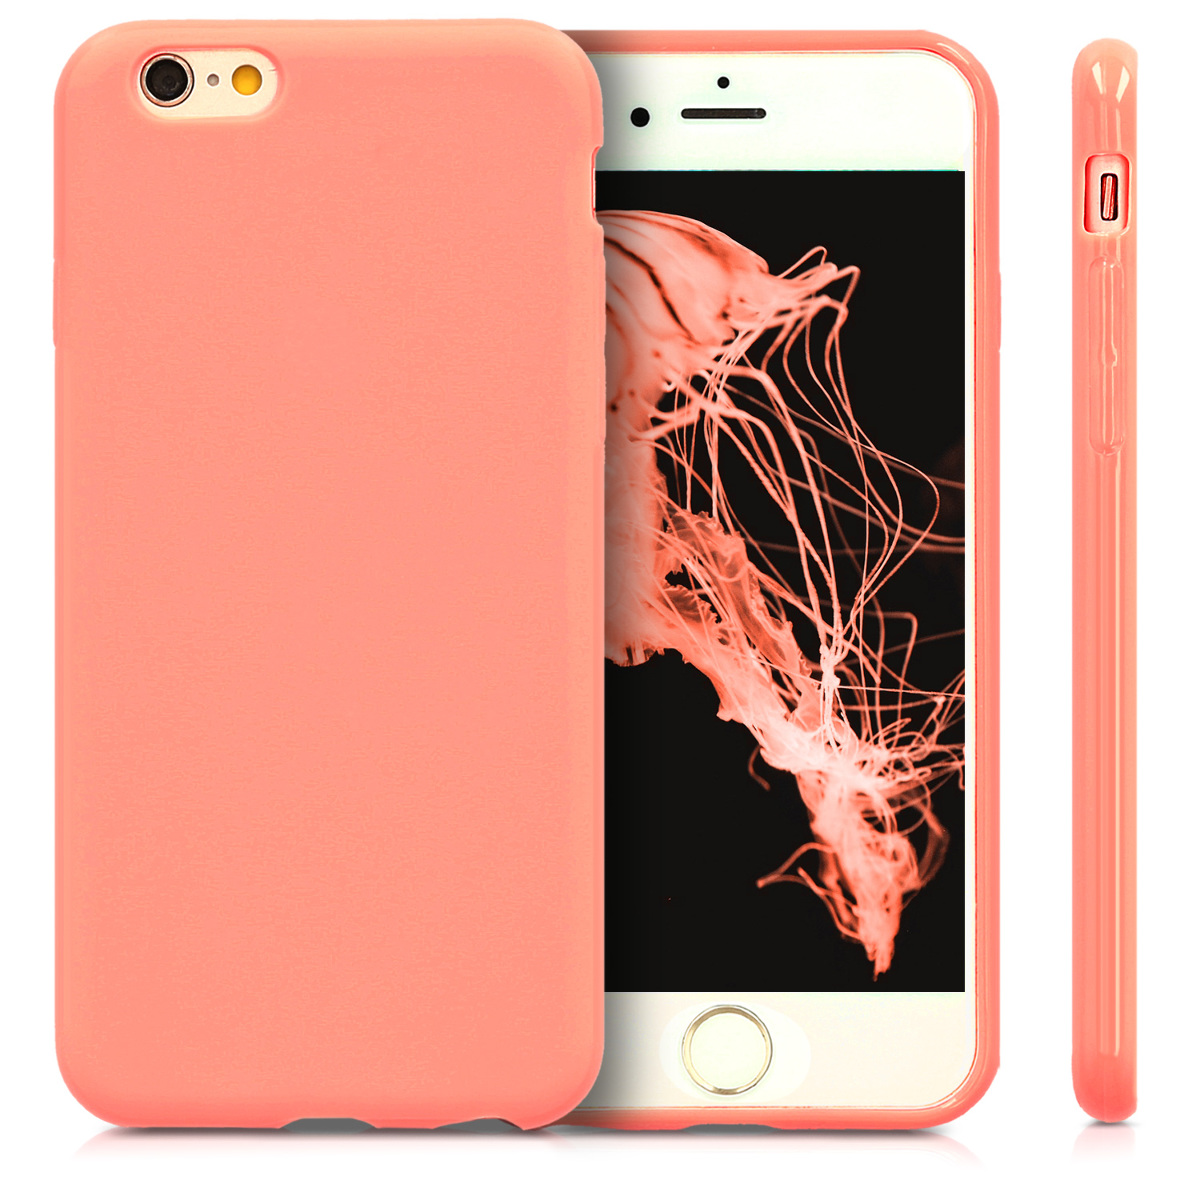 h lle f r apple iphone 6 6s handyh lle handy case cover smartphone backcover ebay. Black Bedroom Furniture Sets. Home Design Ideas